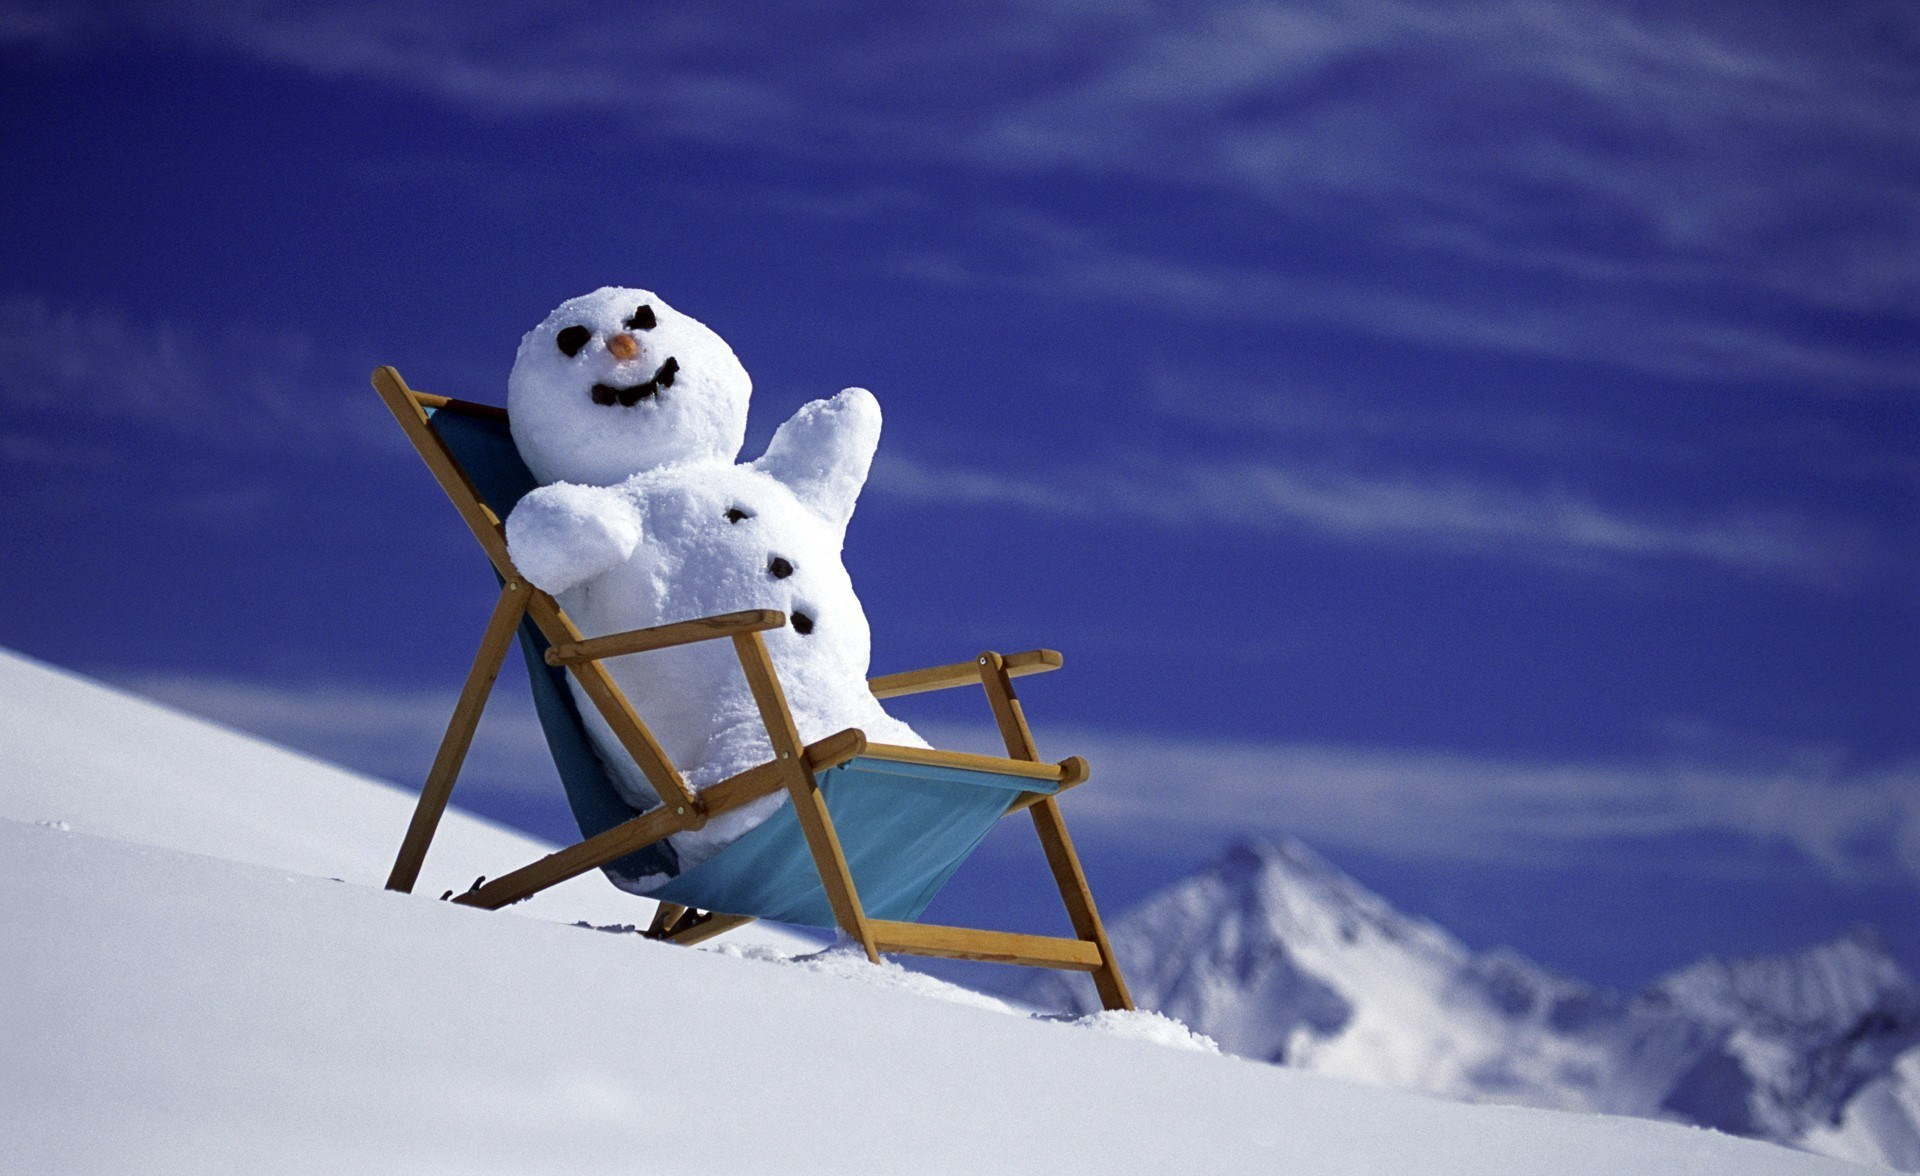 christmas new year winter snow snowman mountains wallpaper background 1920x1176